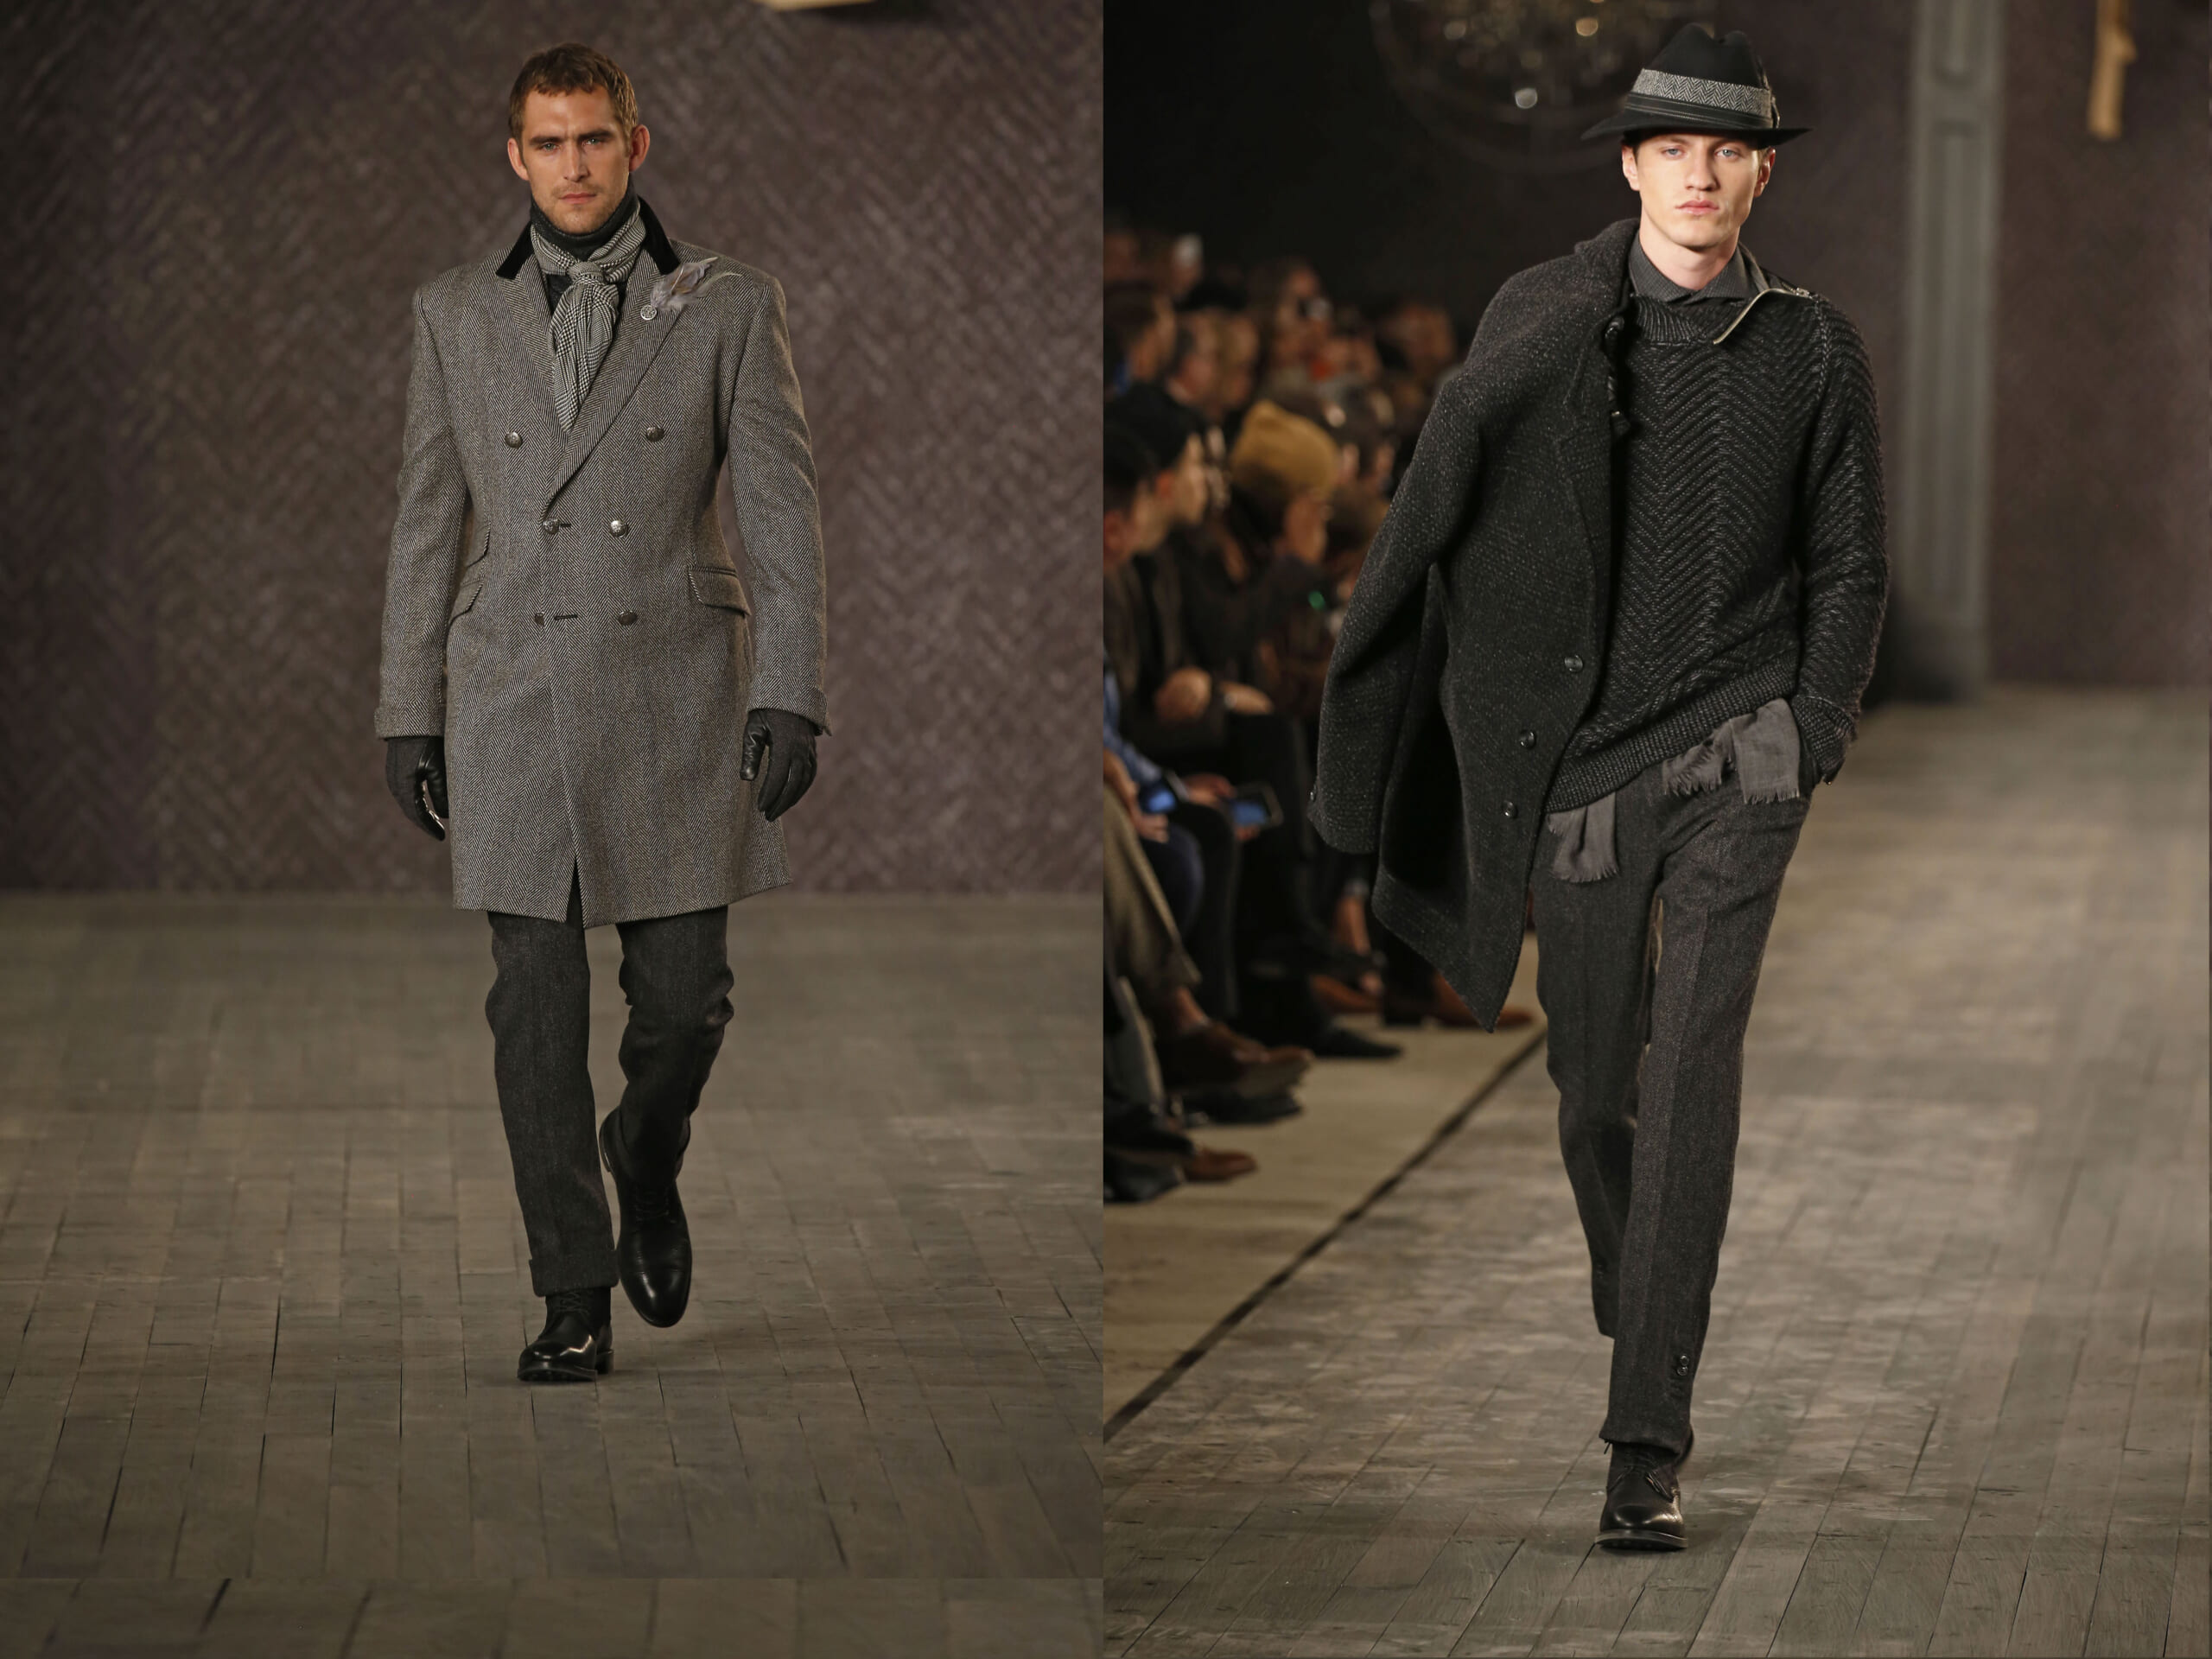 james abboud nyfwm photos by dan lecca